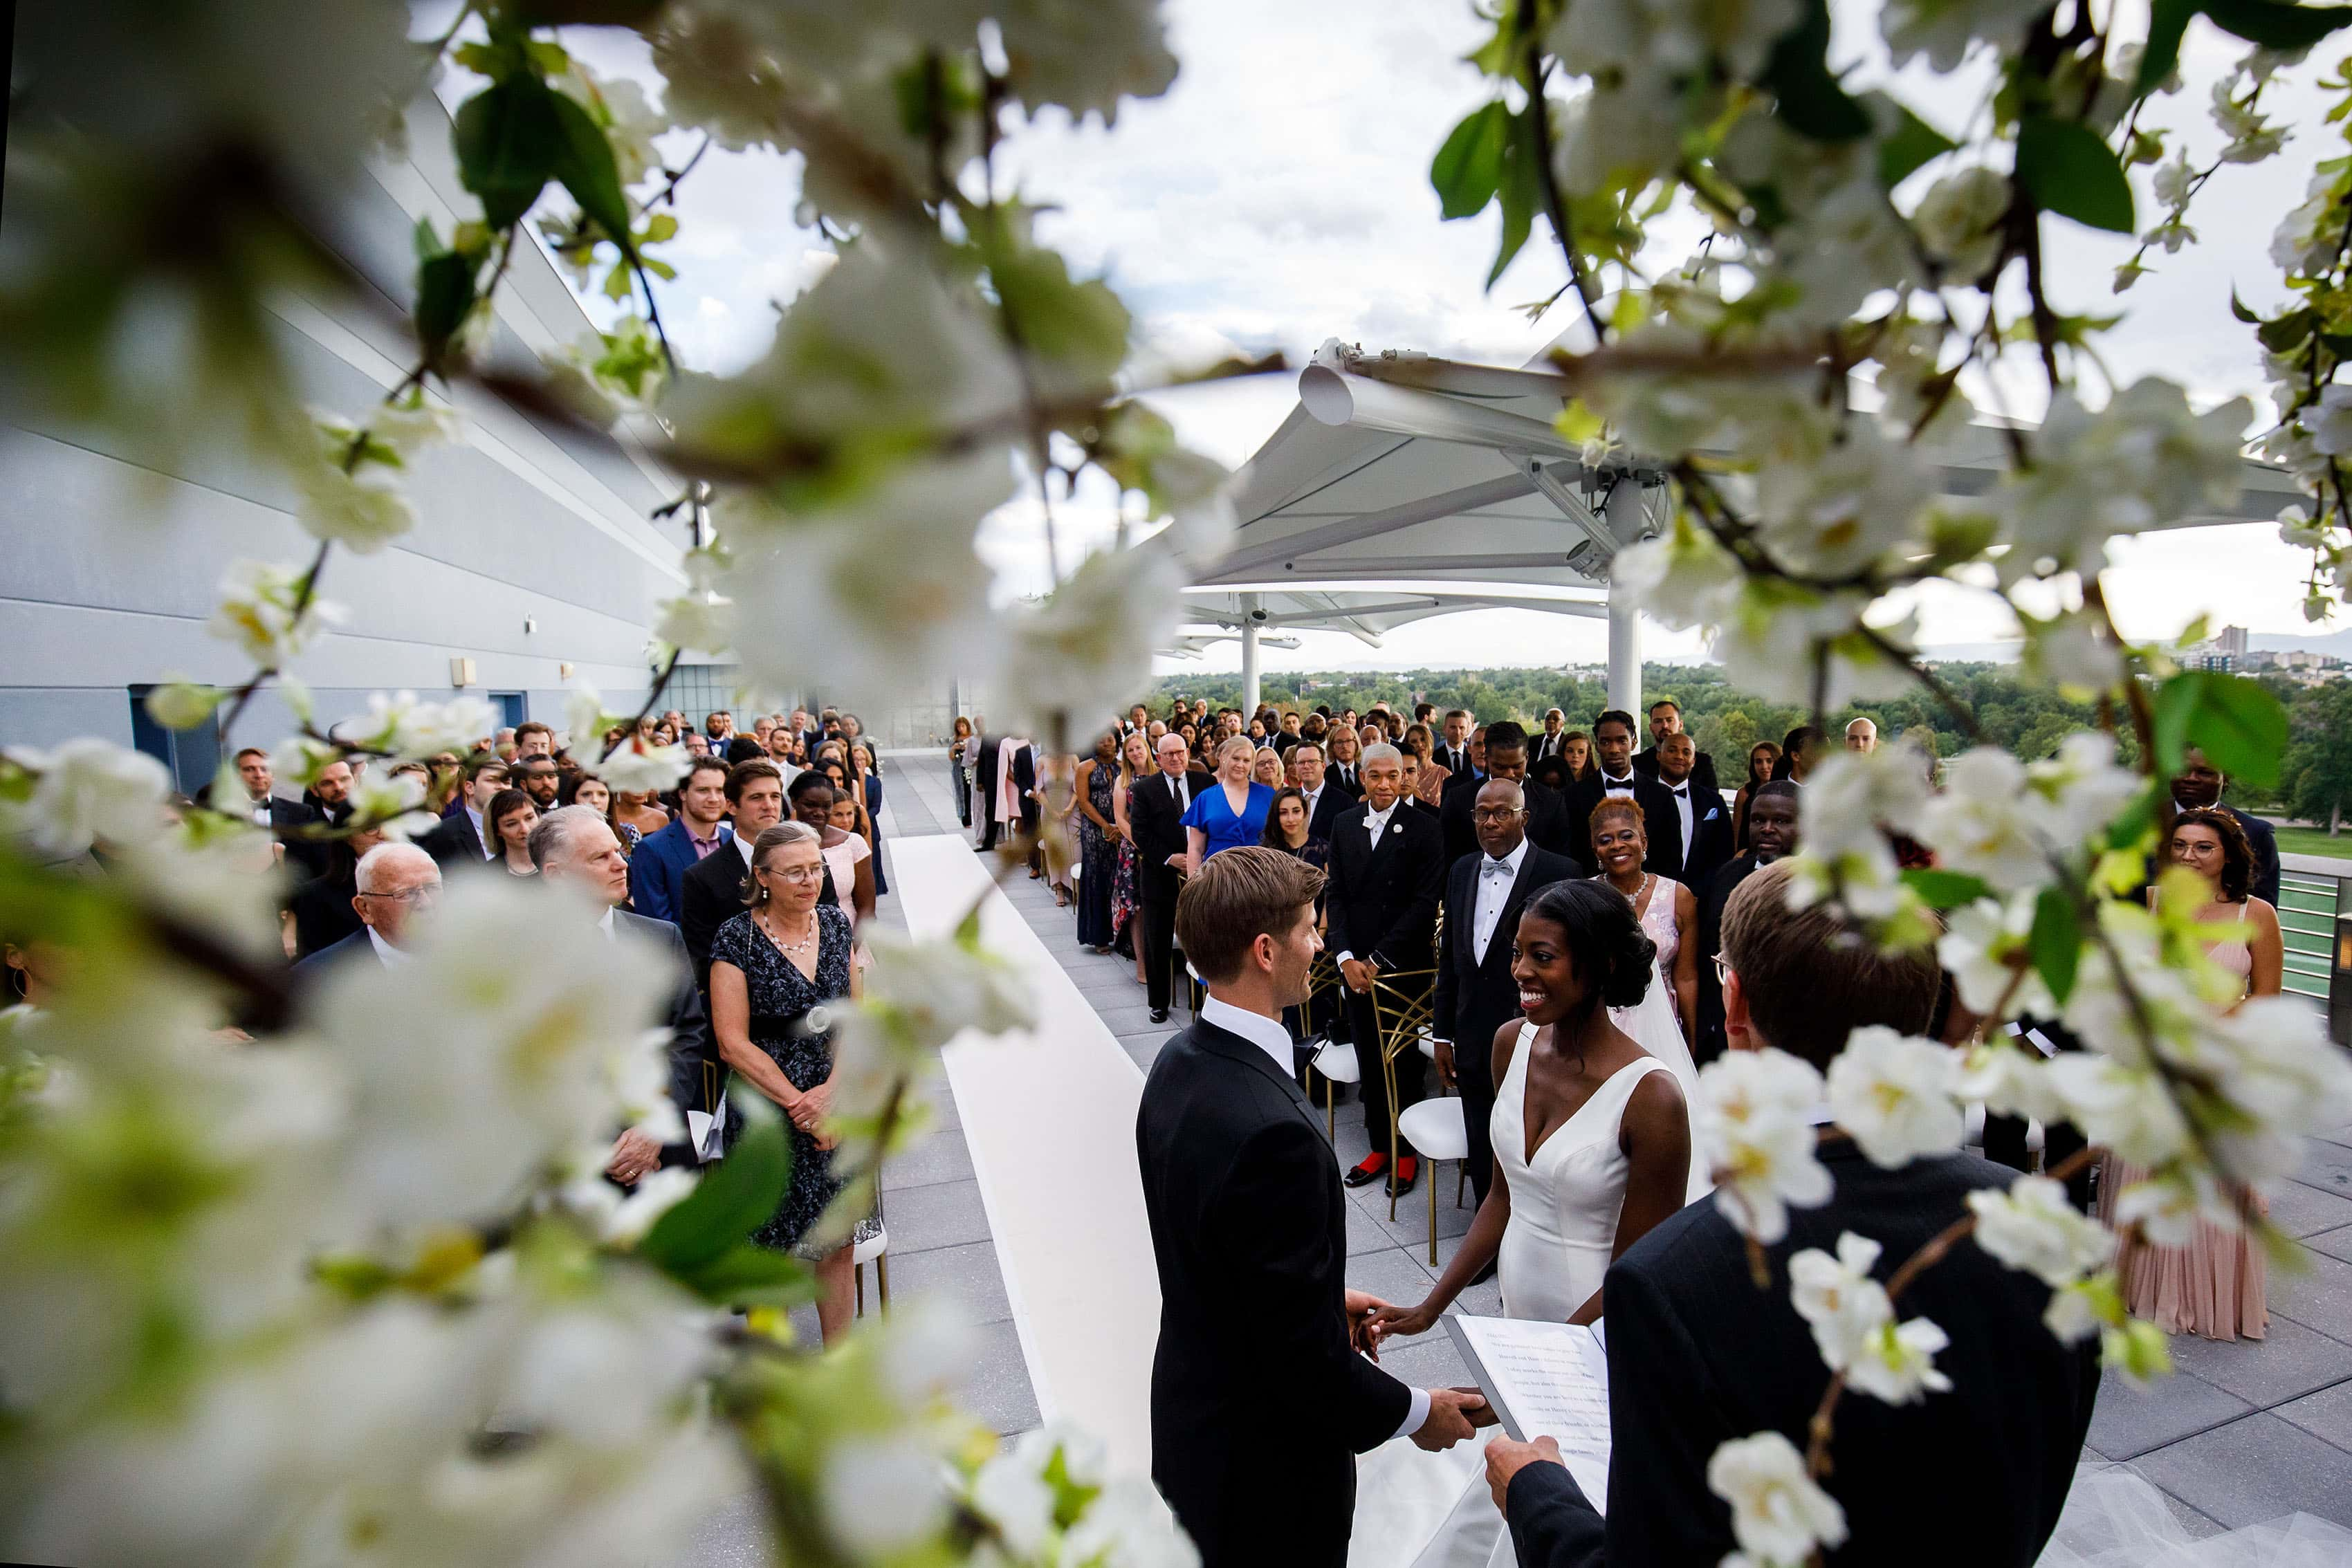 Rooftop wedding ceremony at the Denver Museum of Nature and Science